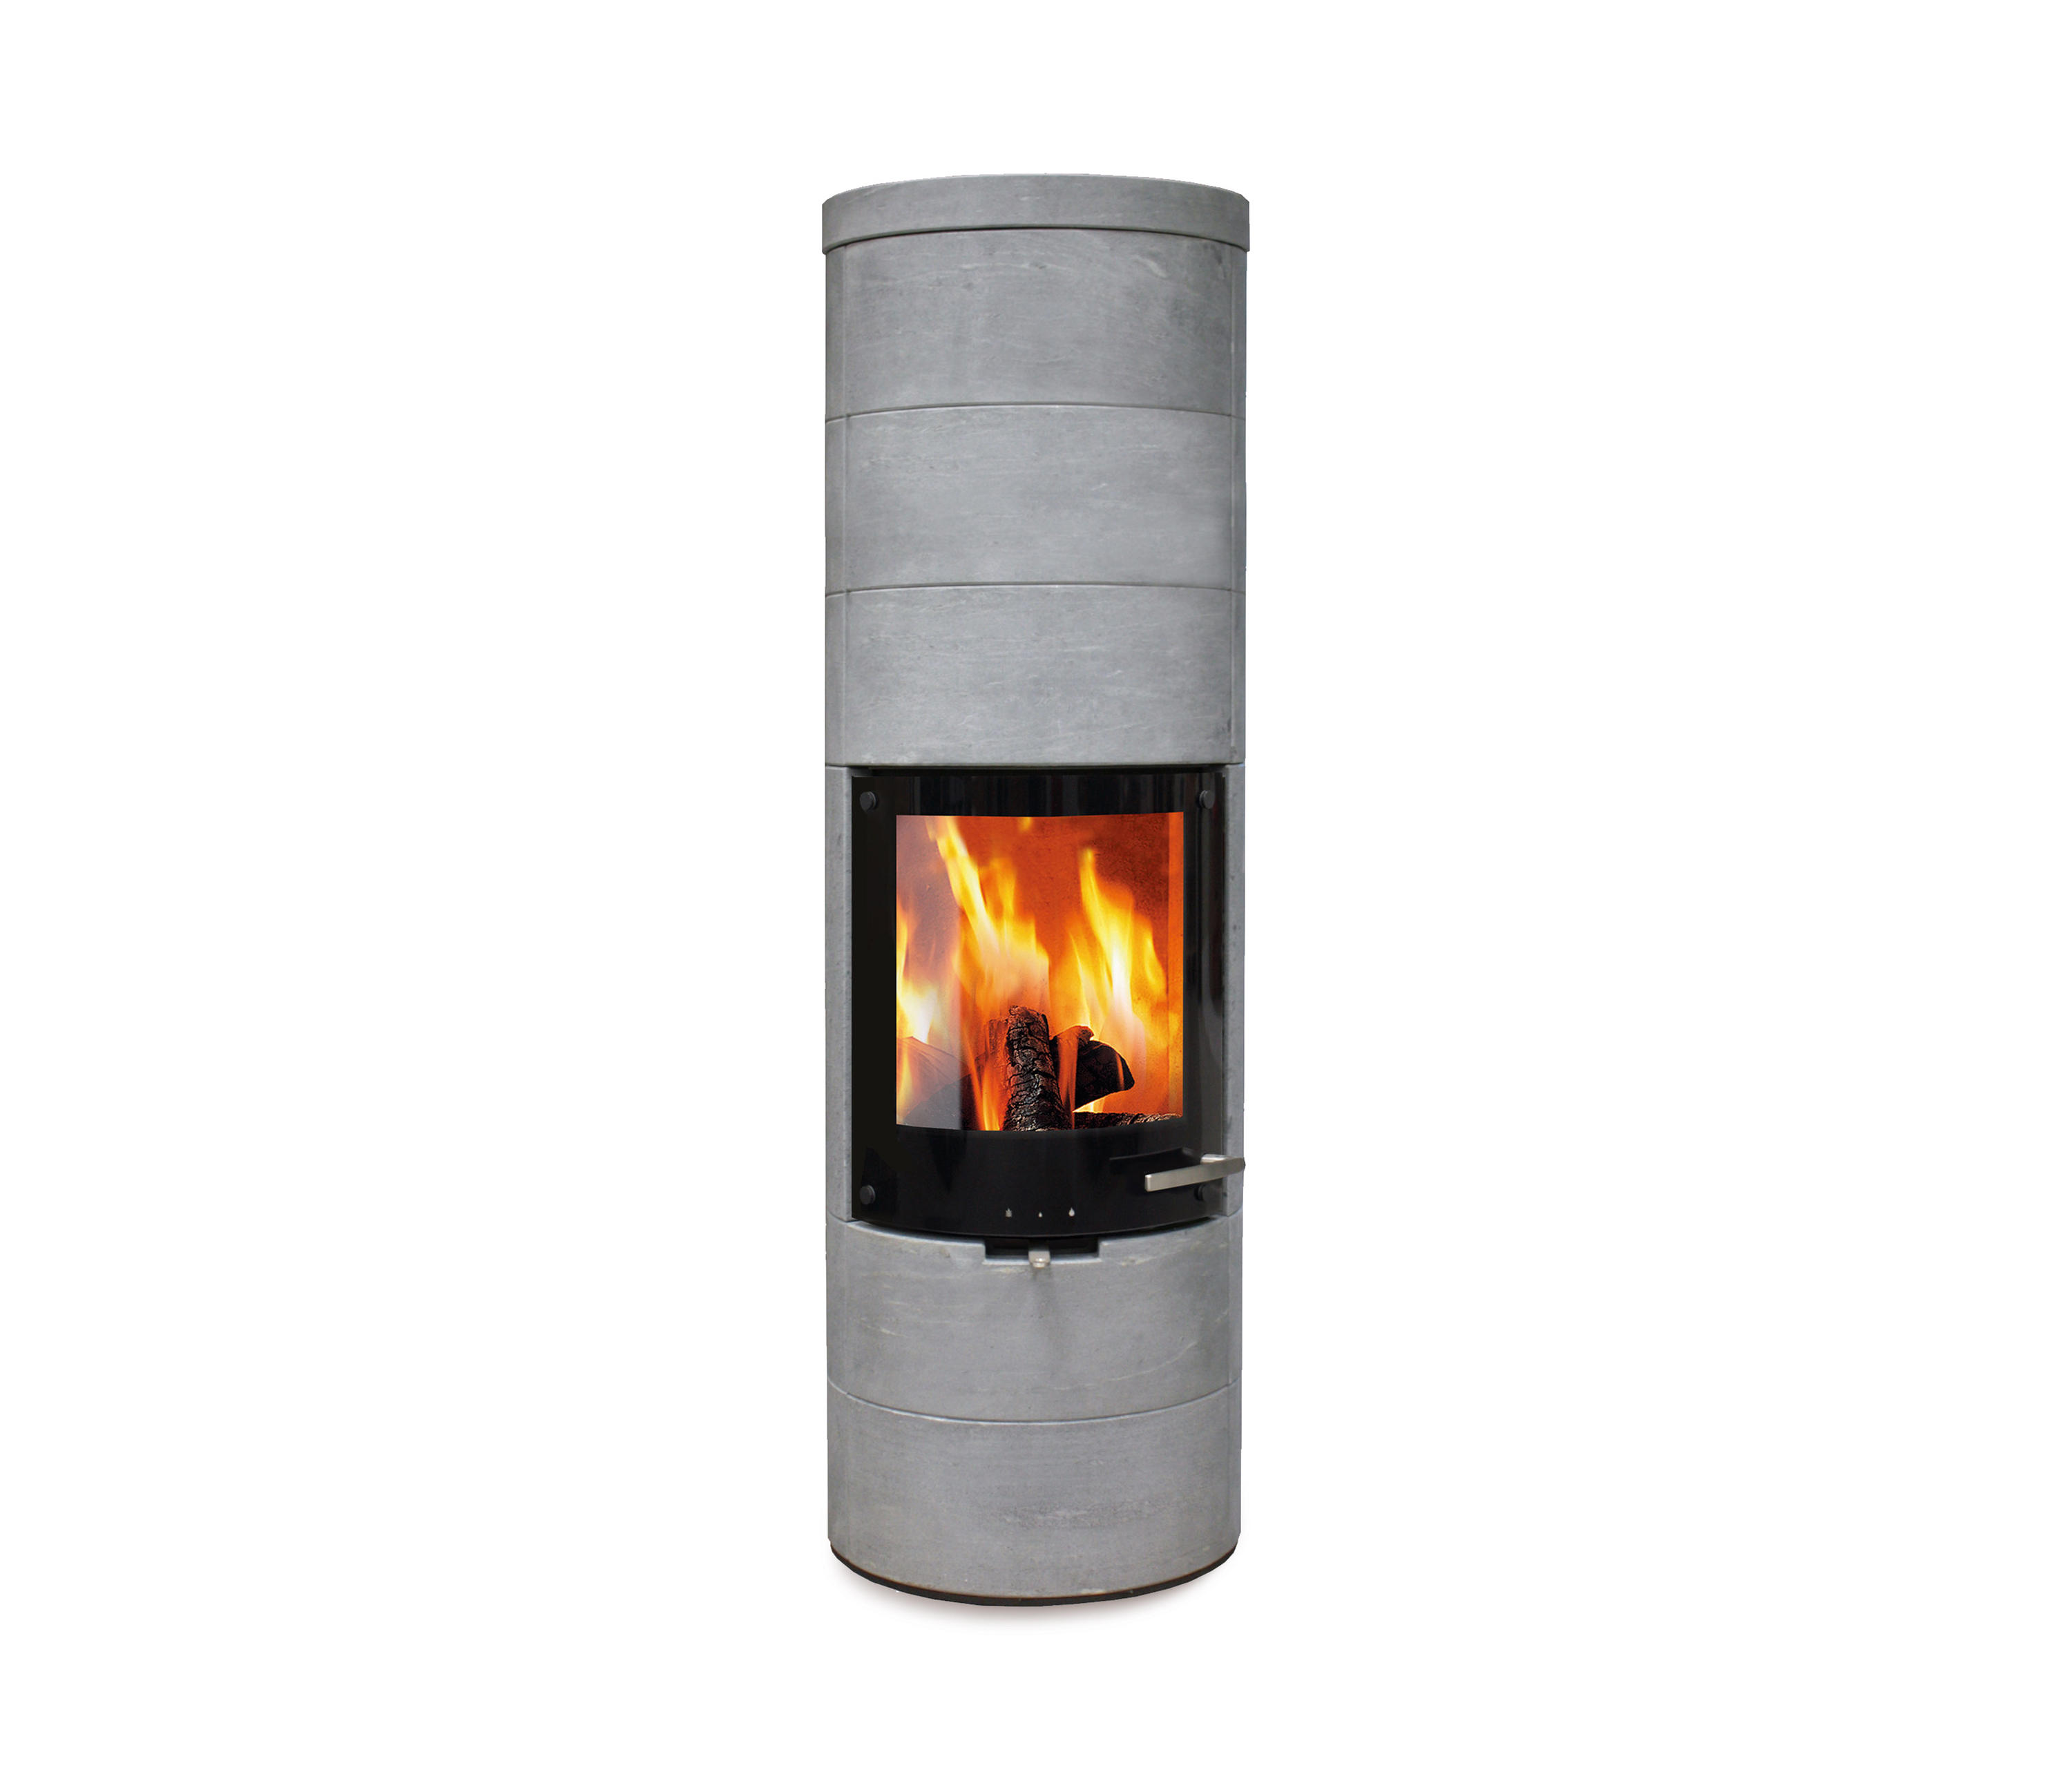 milano stein wood burning stoves by skantherm architonic. Black Bedroom Furniture Sets. Home Design Ideas